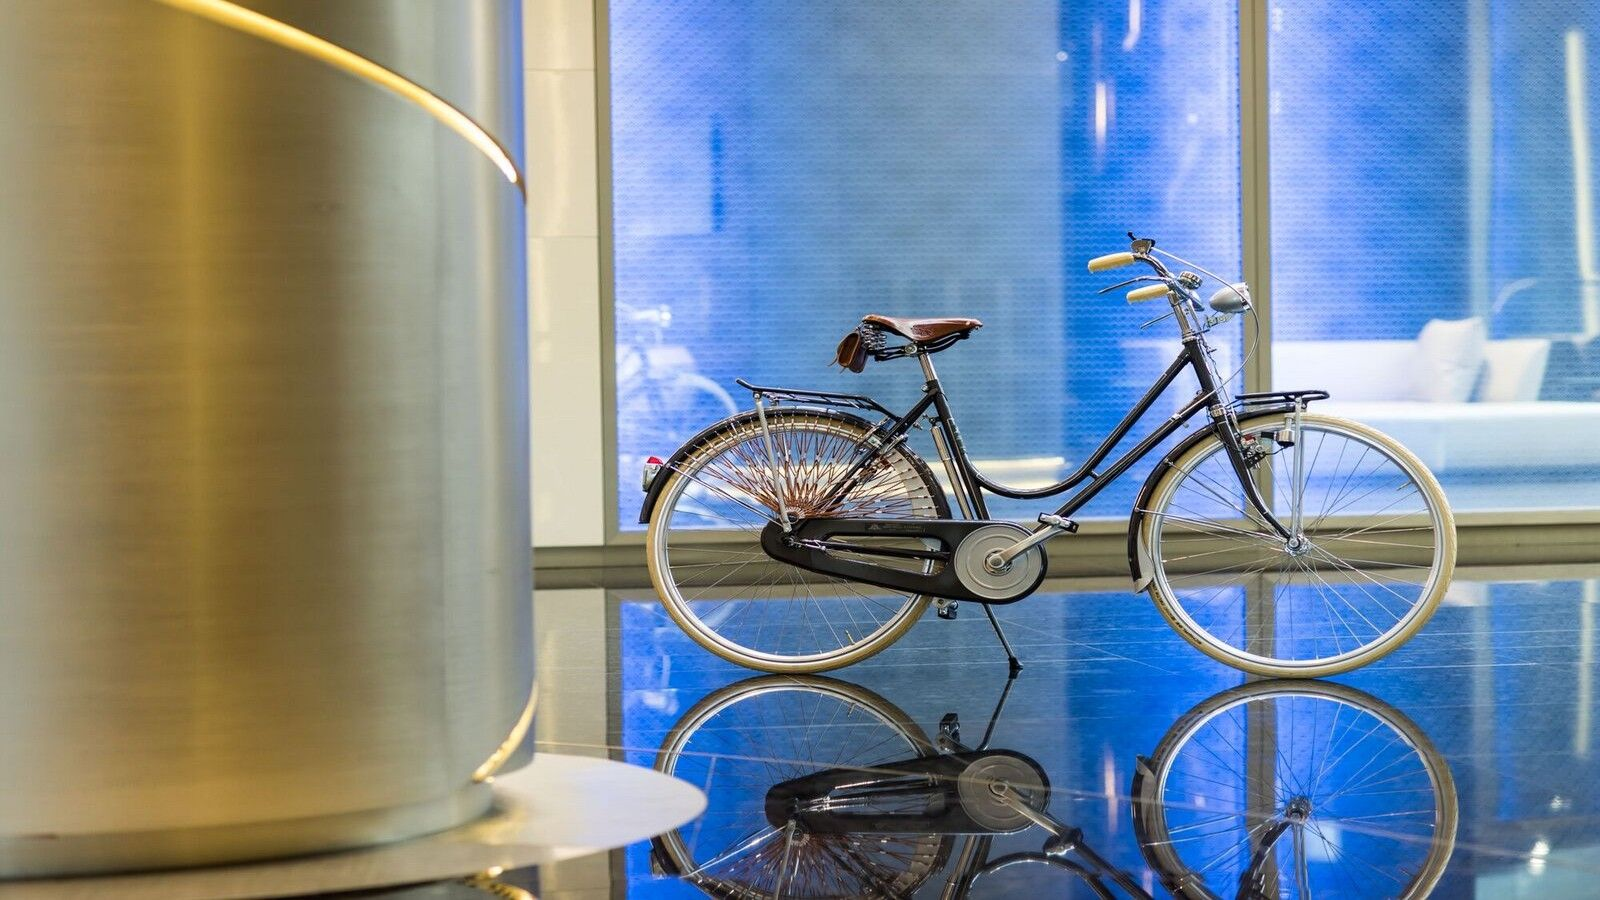 corinto hotel gallia bike